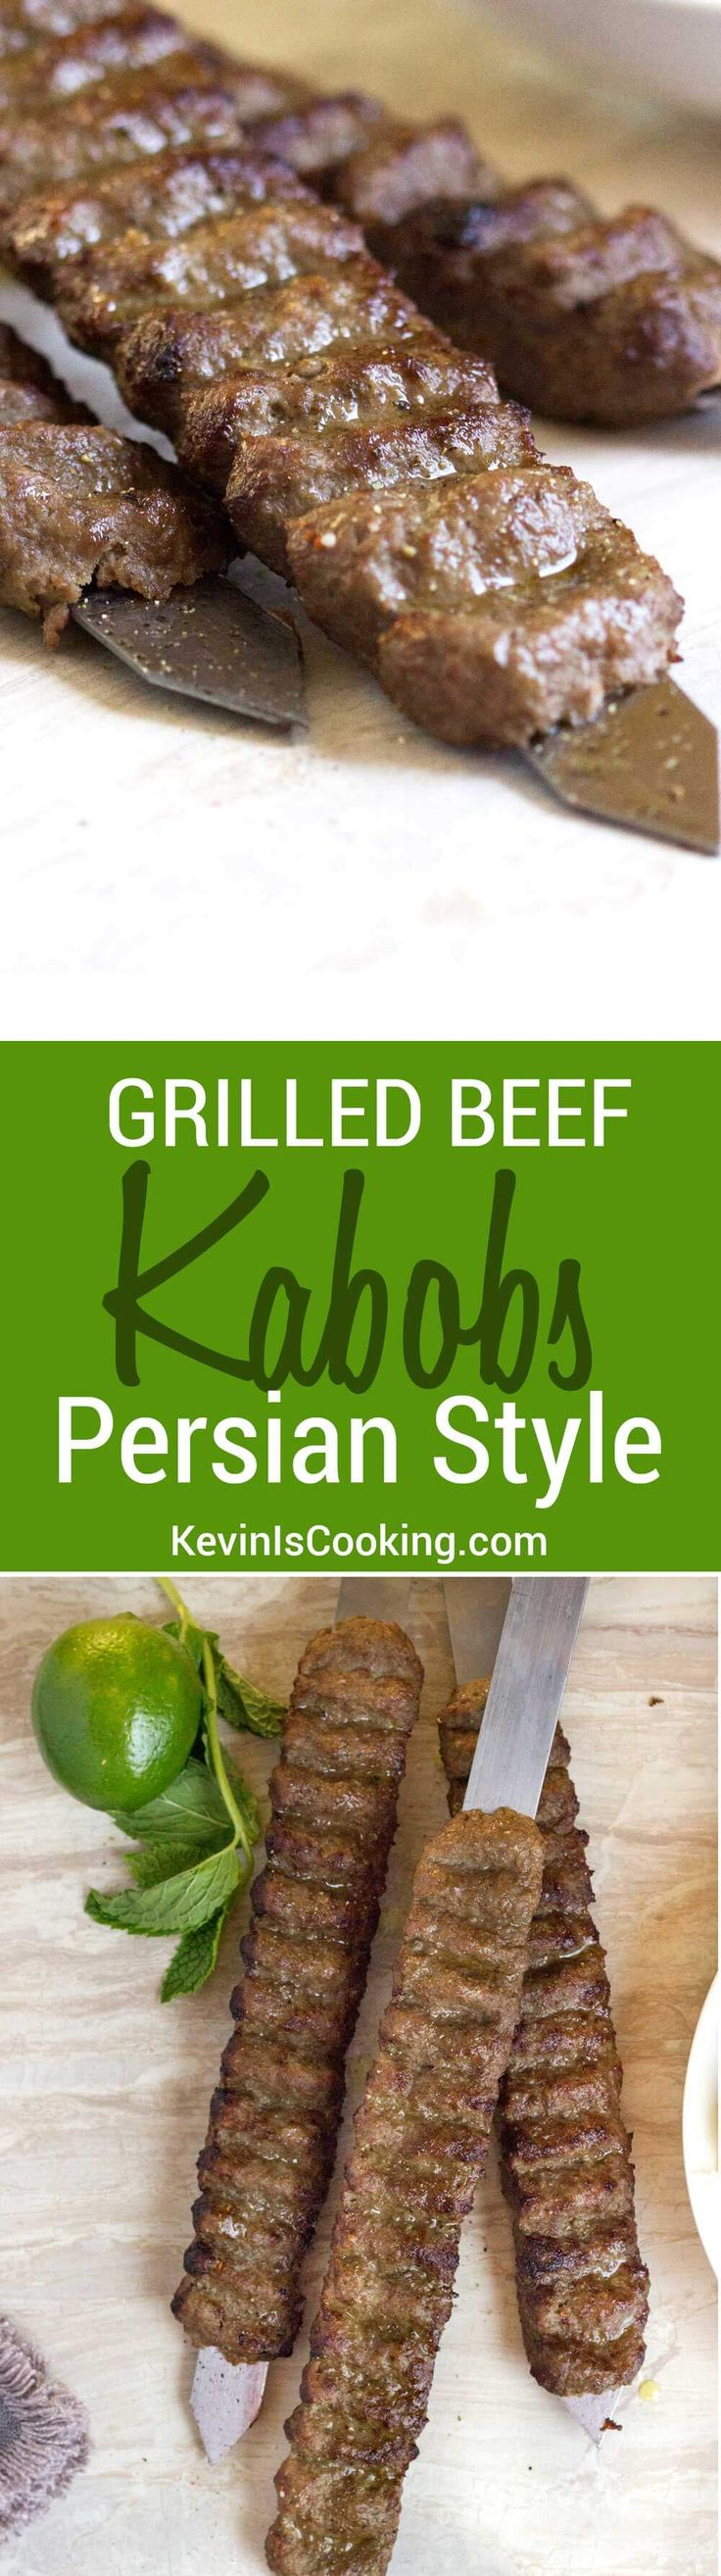 If you love grilled beef kabobs like our family does, these will knock your socks off. The spices and grated onion make this a winner!